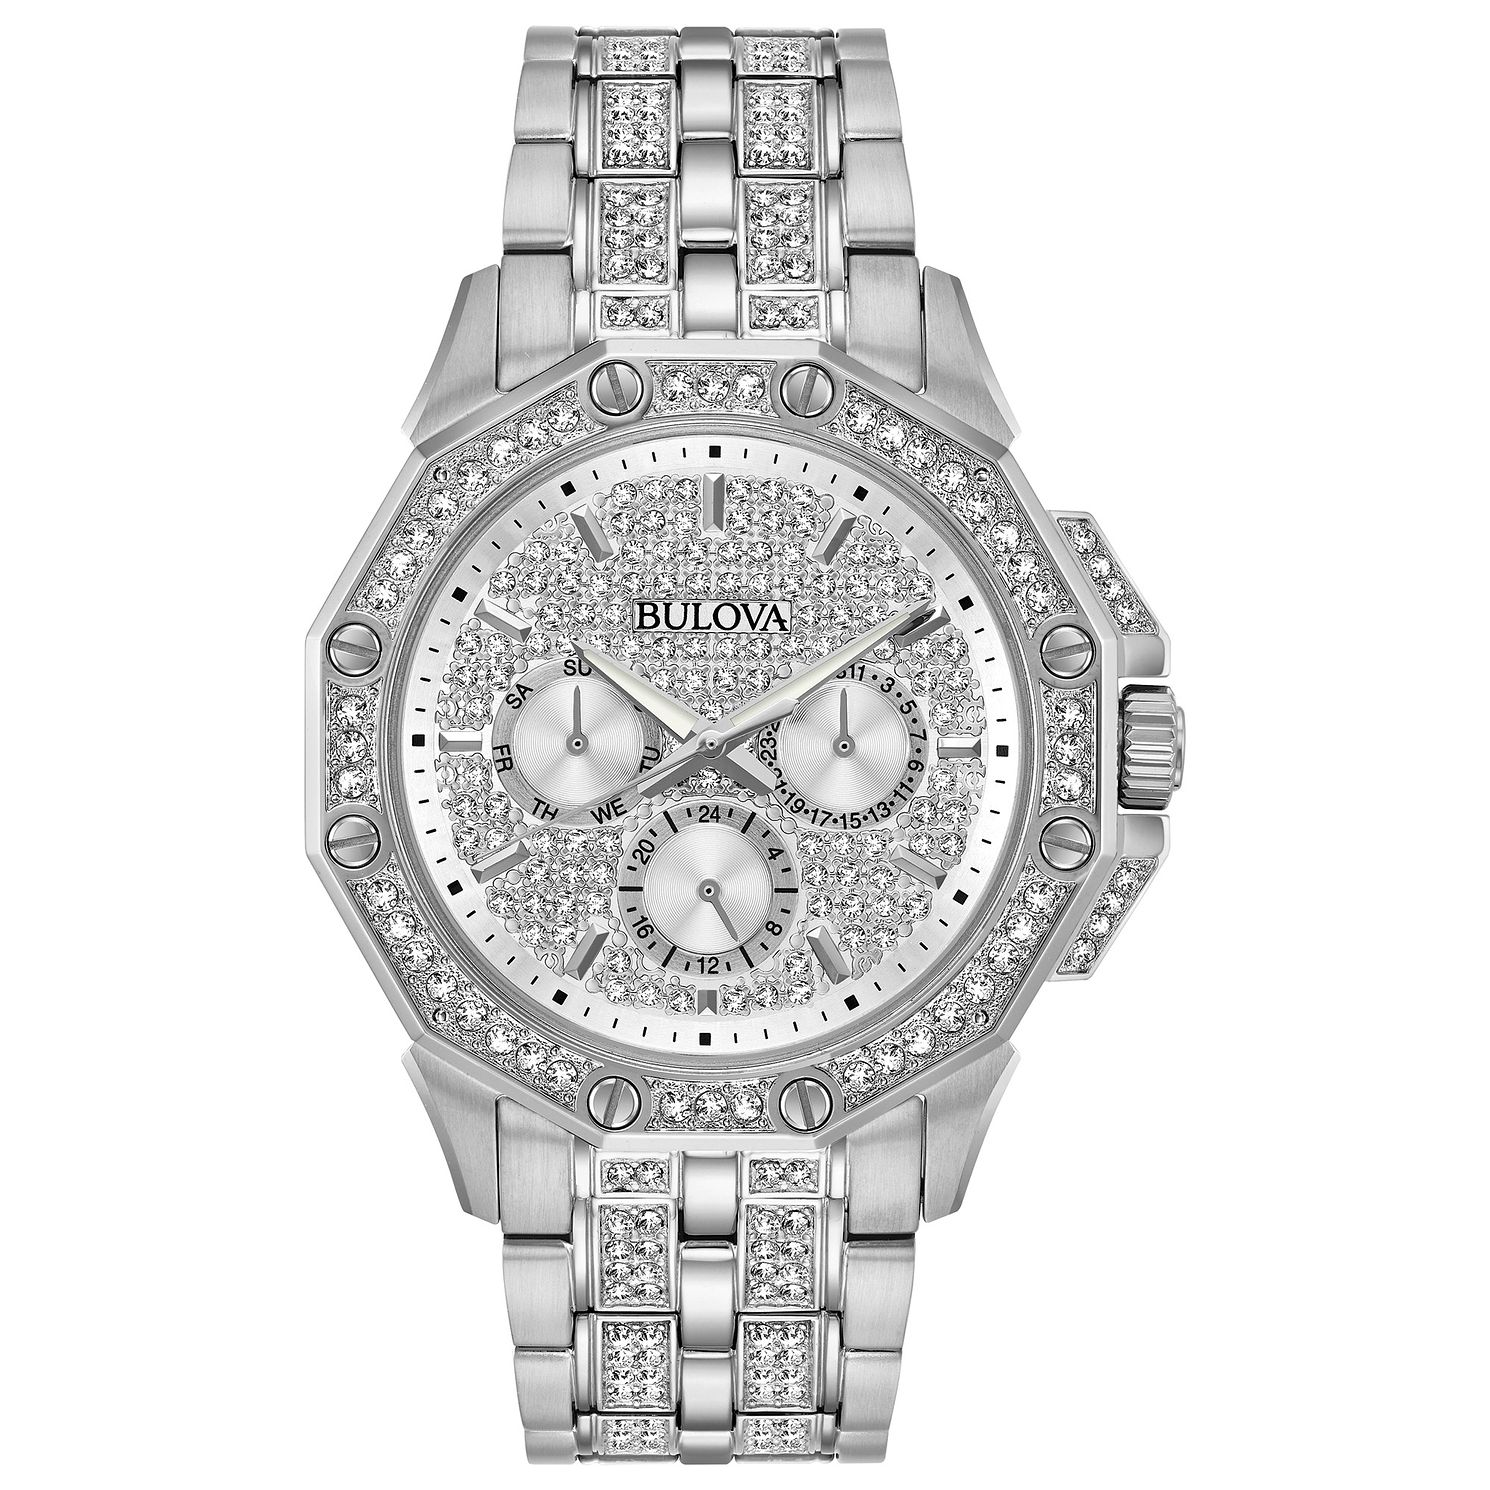 Bulova Crystal Men's Stainless Steel Bracelet Watch - Product number 3532445